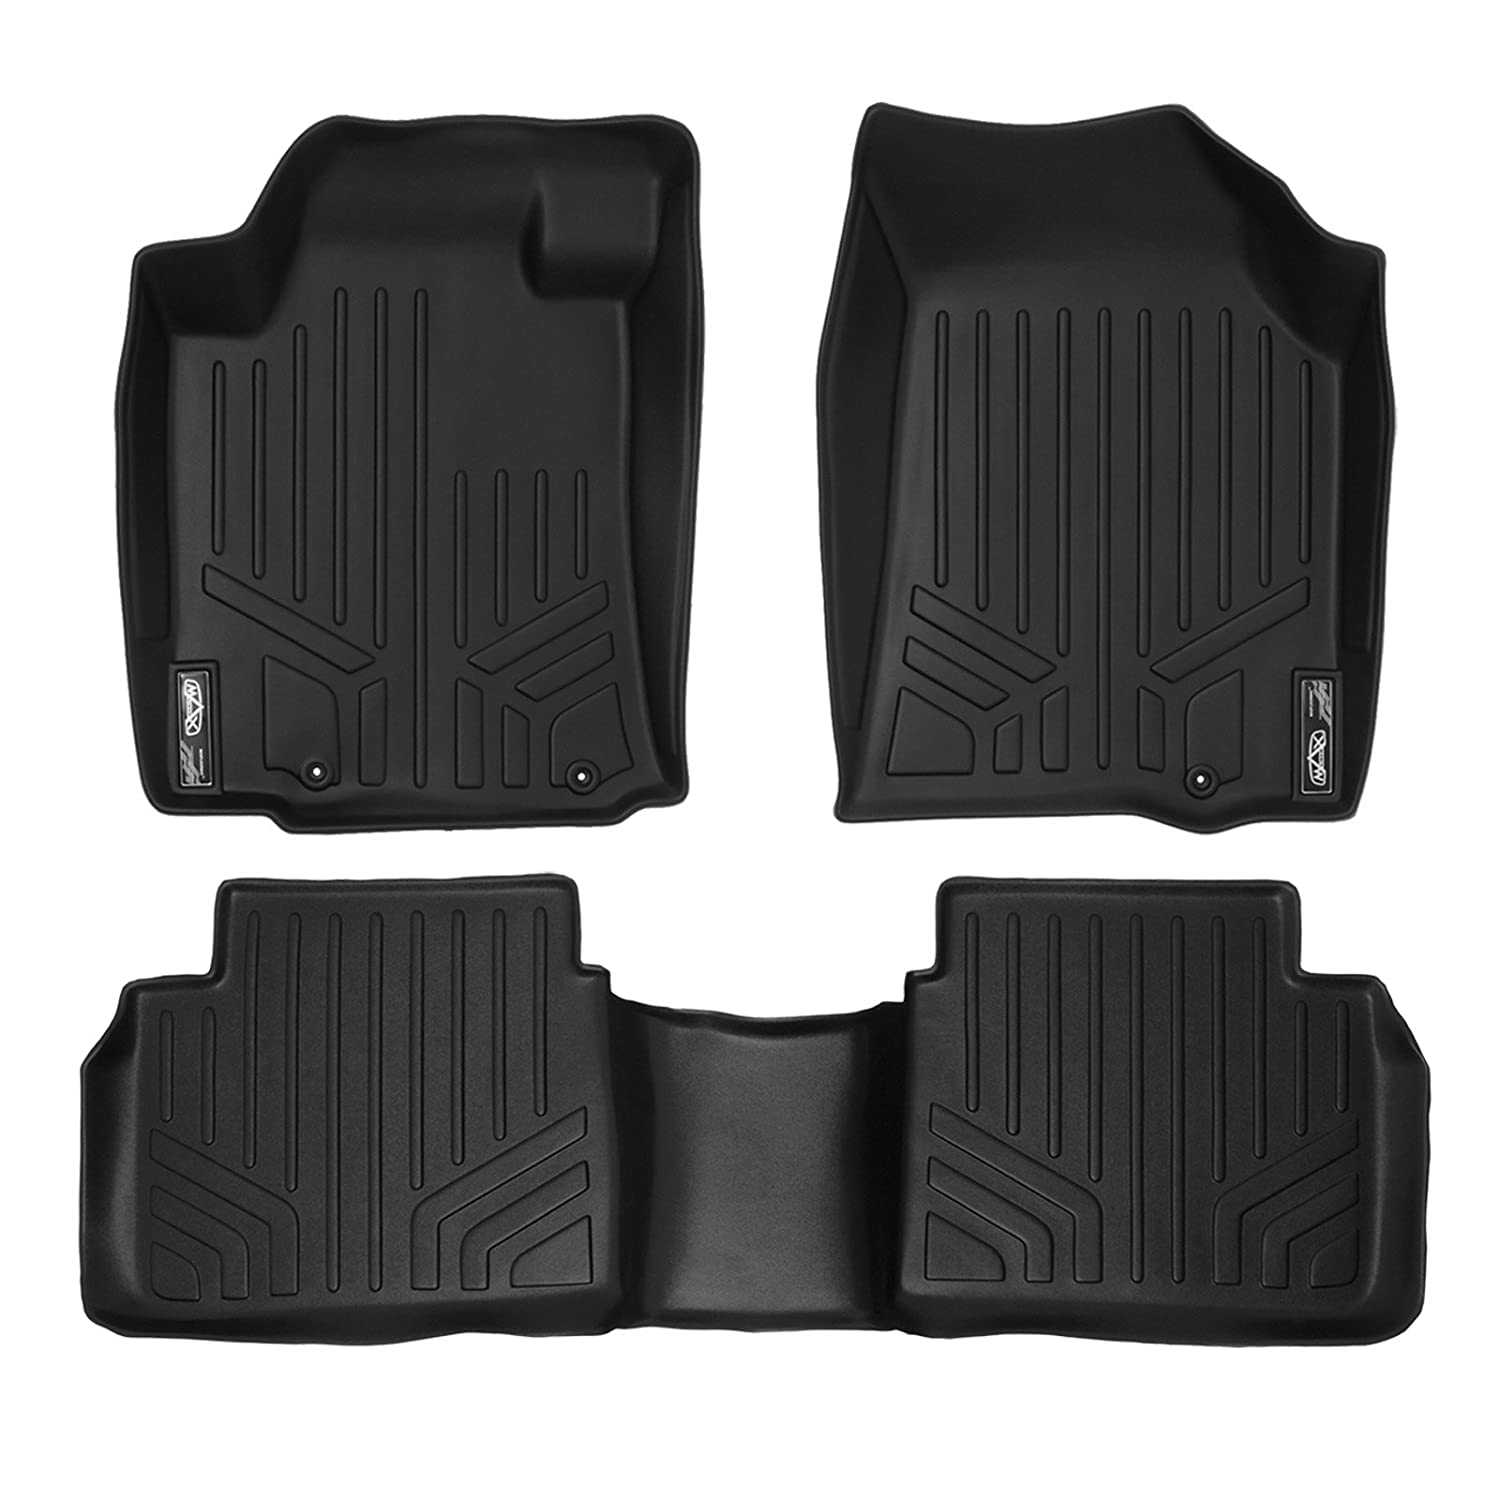 MAXLINER Floor Mats 2 Row Liner Set Black for 2013-2018 Nissan Altima Sedan (Manufactured After Nov. 2012)